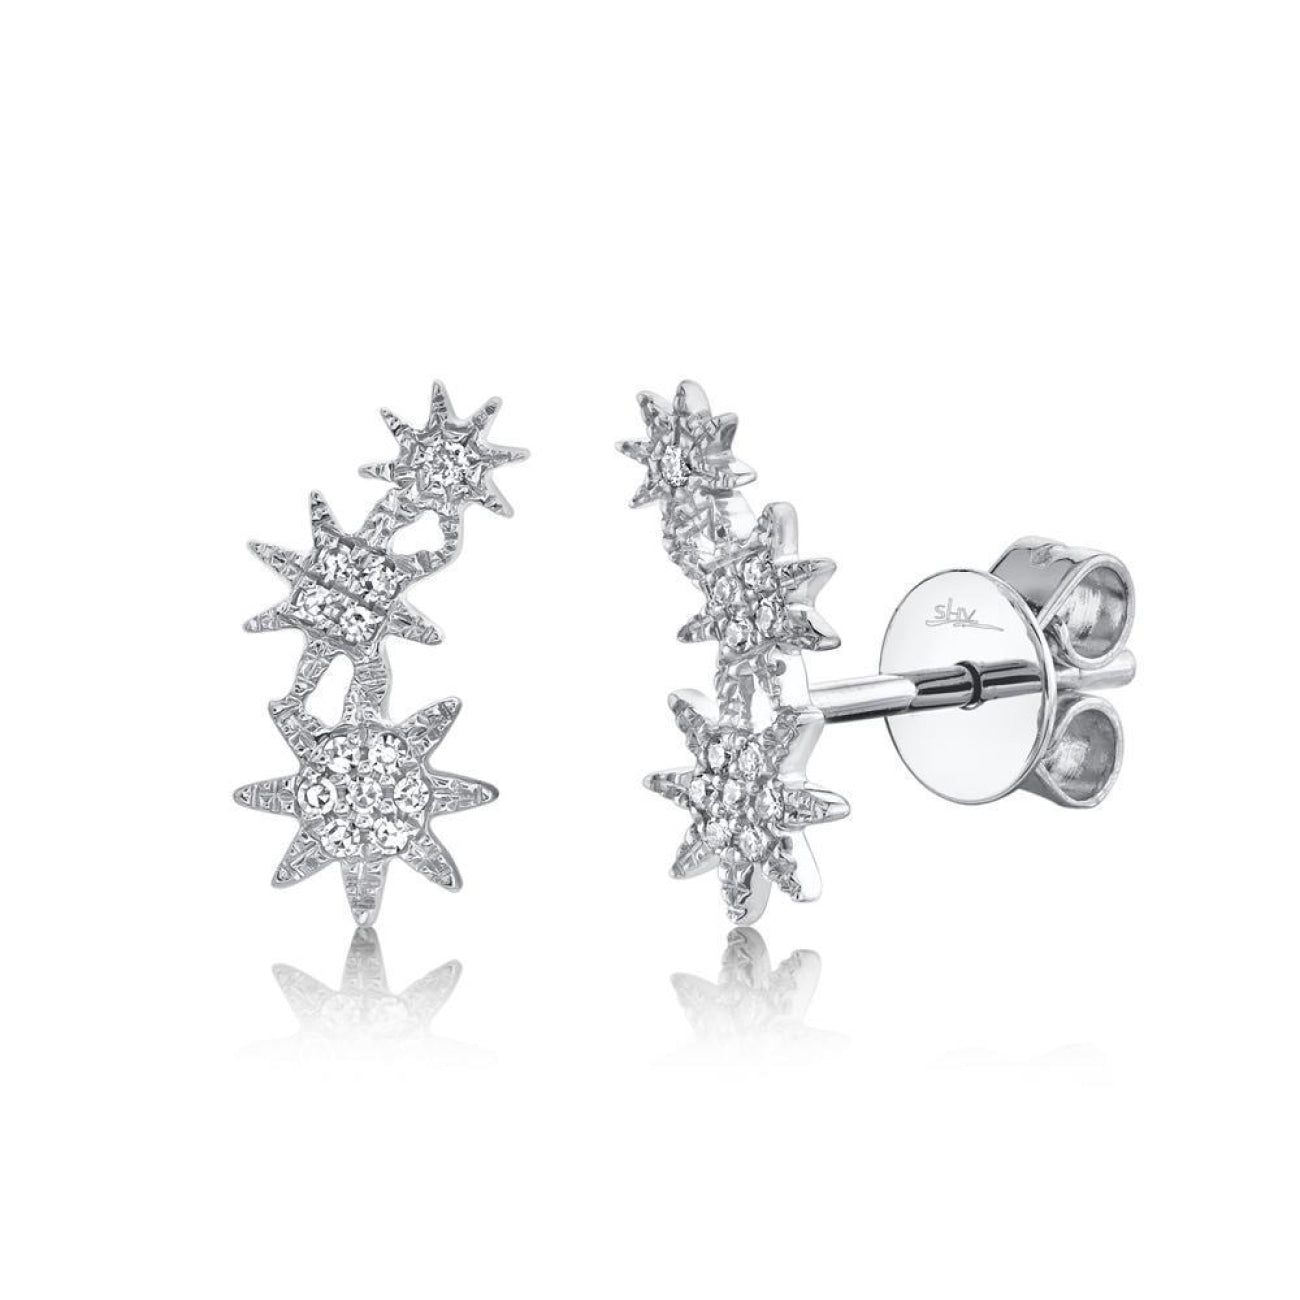 Shy Creation Jewelry - 0.06CT DIAMOND STAR STUD EARRING | Manfredi Jewels